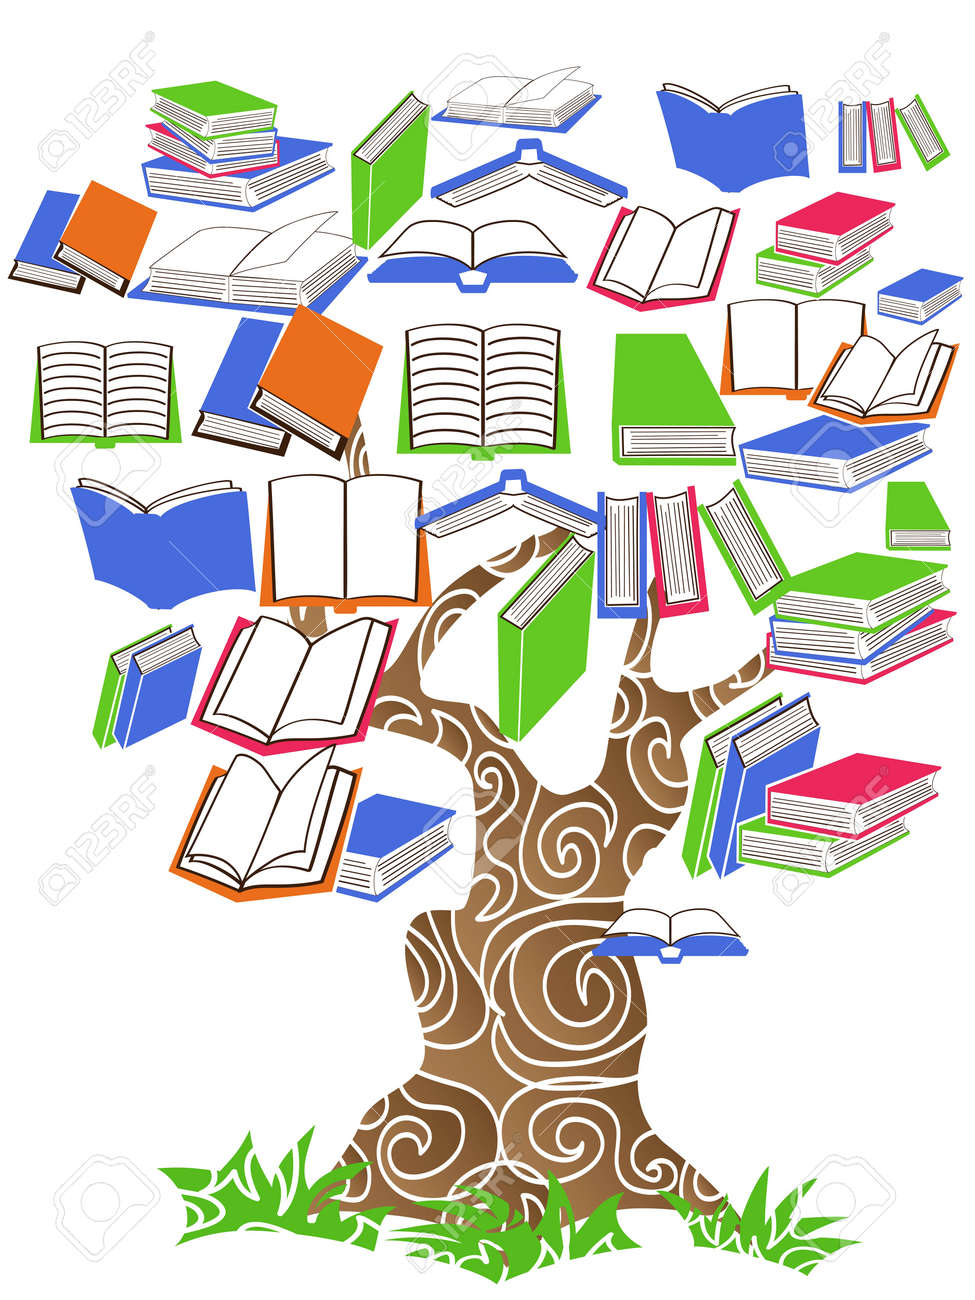 Concept books tree Clipart | k14699444 | Book tree, Library art, Tree images